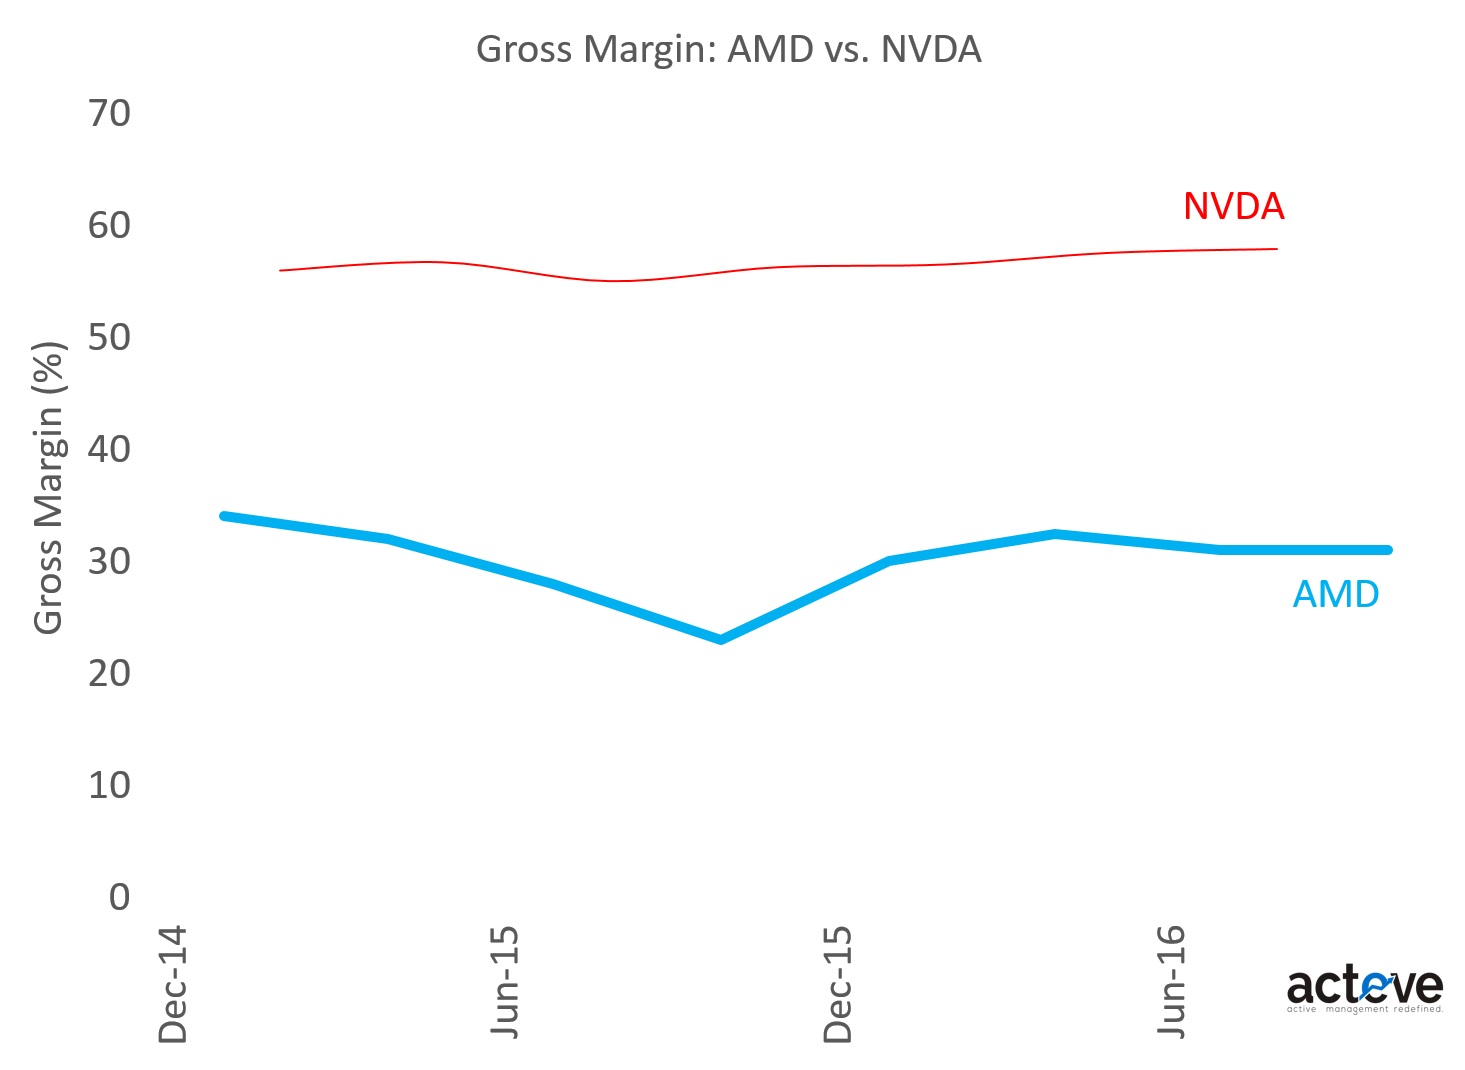 AMD vs. NVDA Gross Margins